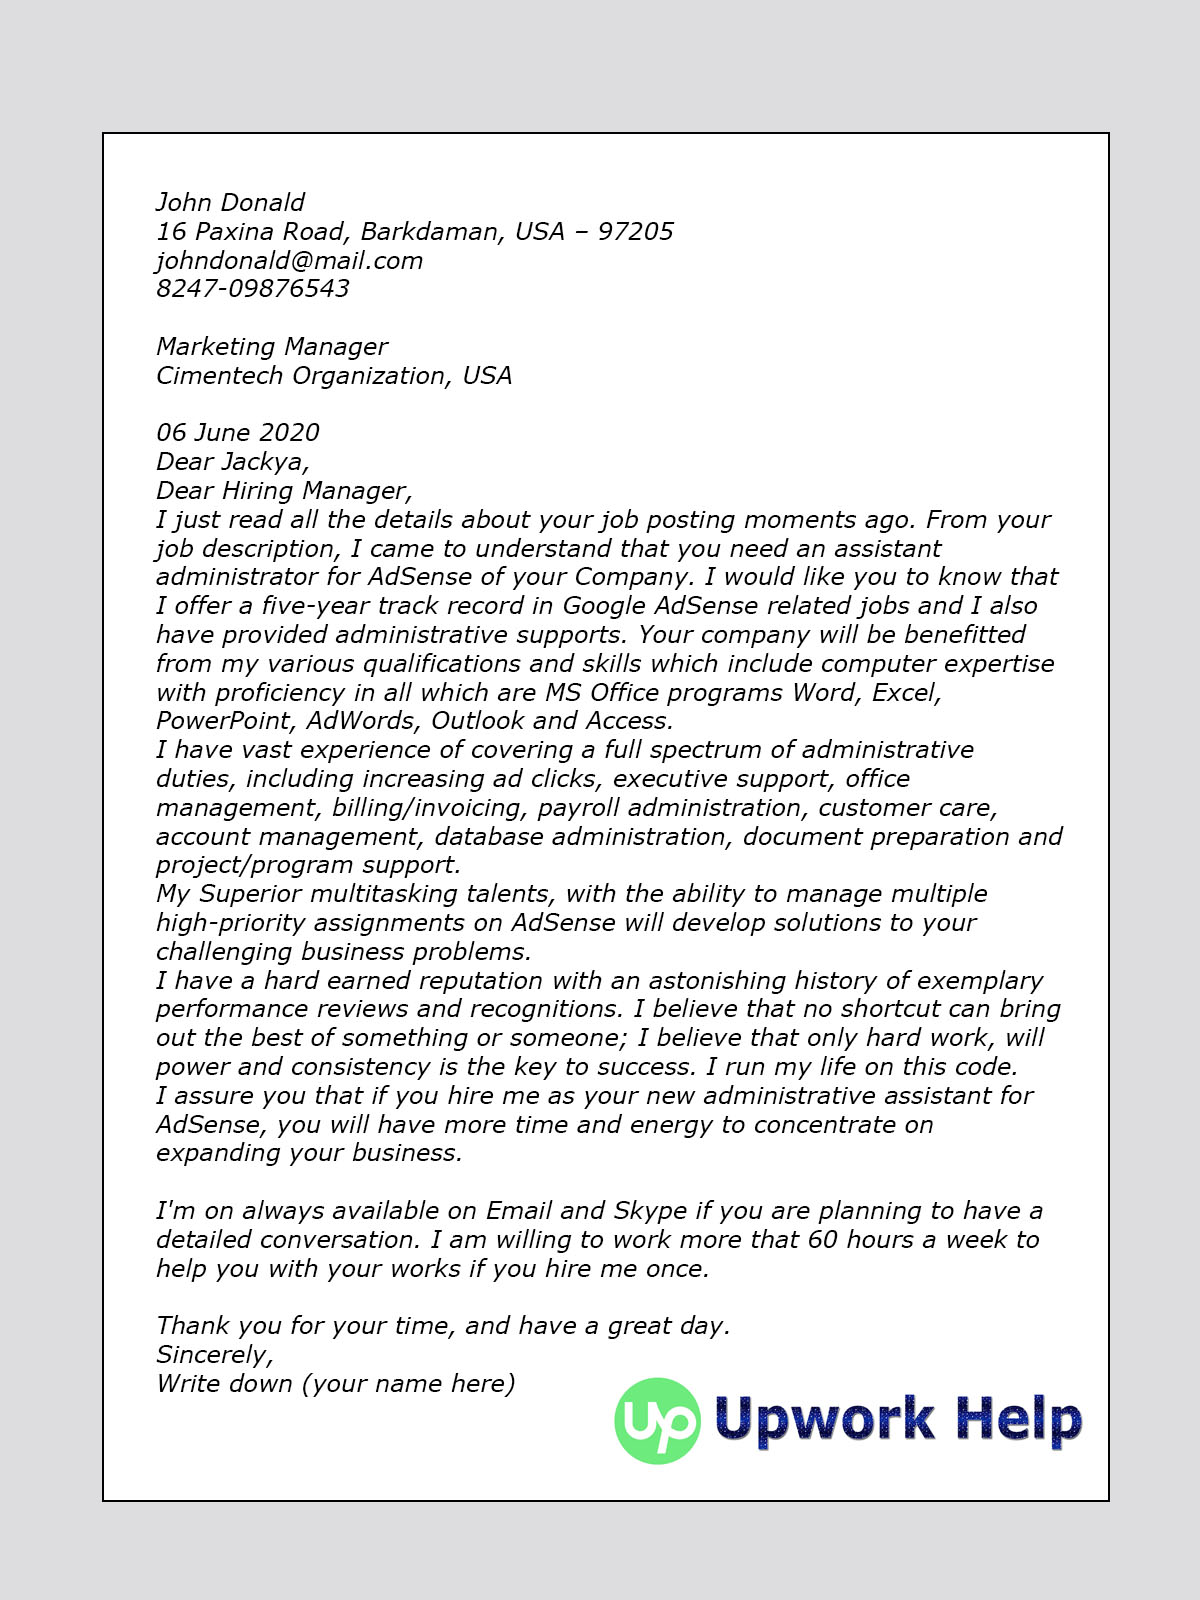 Cover Letter Sample for AdSense Marketing and PPC - Upwork Help